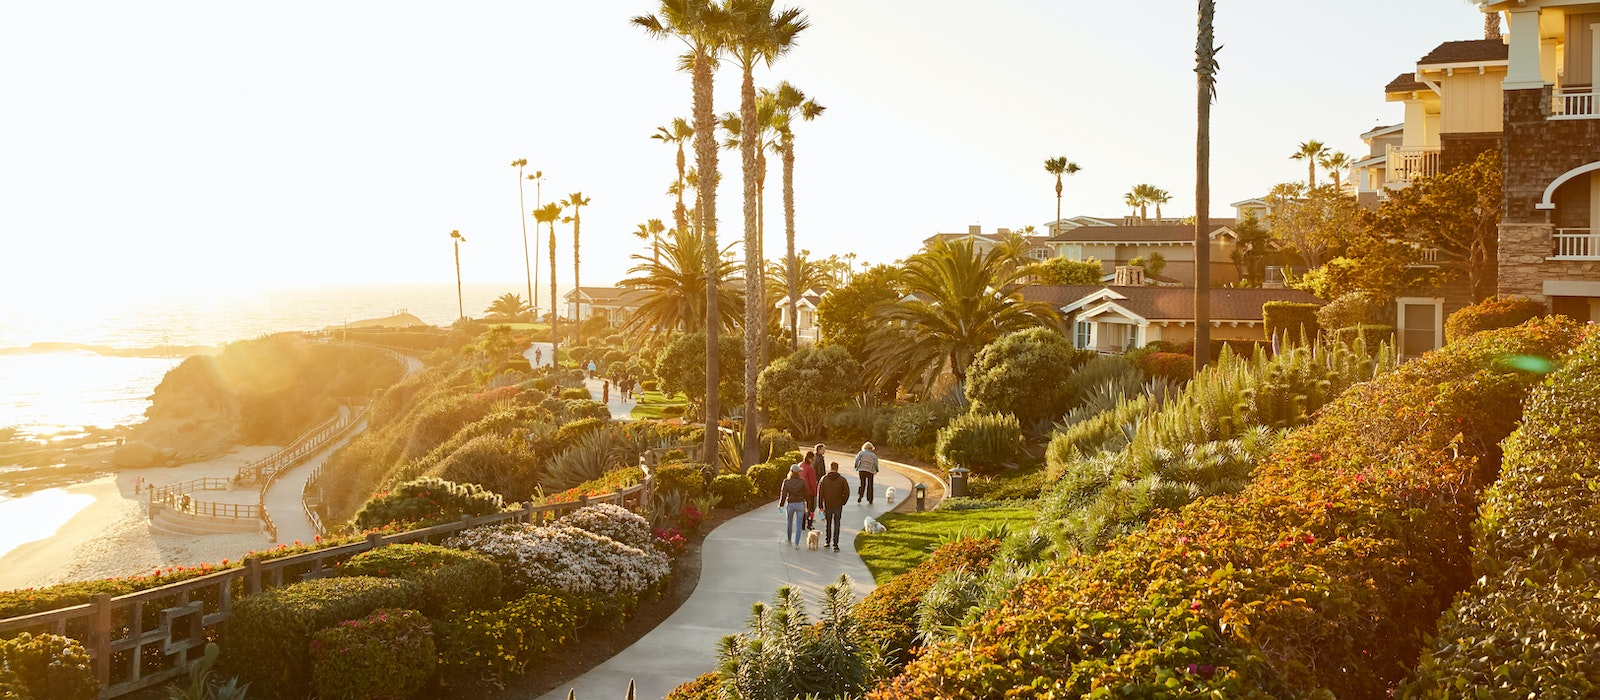 The Southern California ideal of easy living along the coastline may have originated in Orange County.